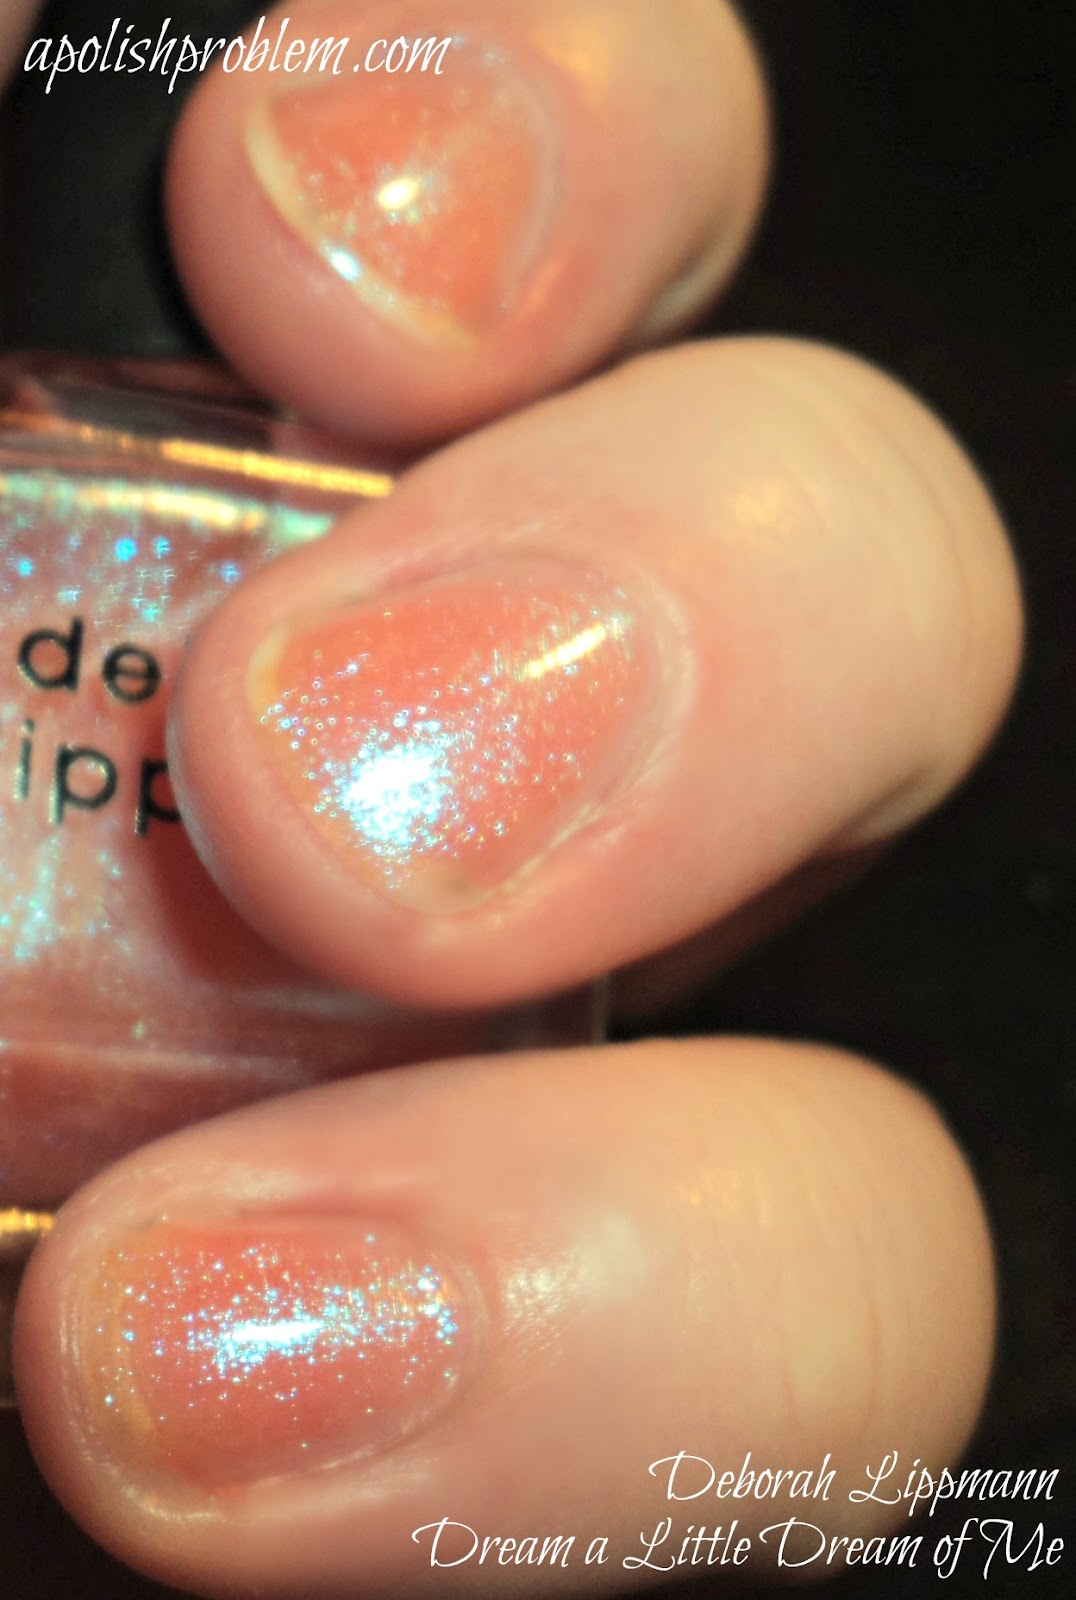 A Polish Problem: Deborah Lippmann Dream a Little Dream of Me